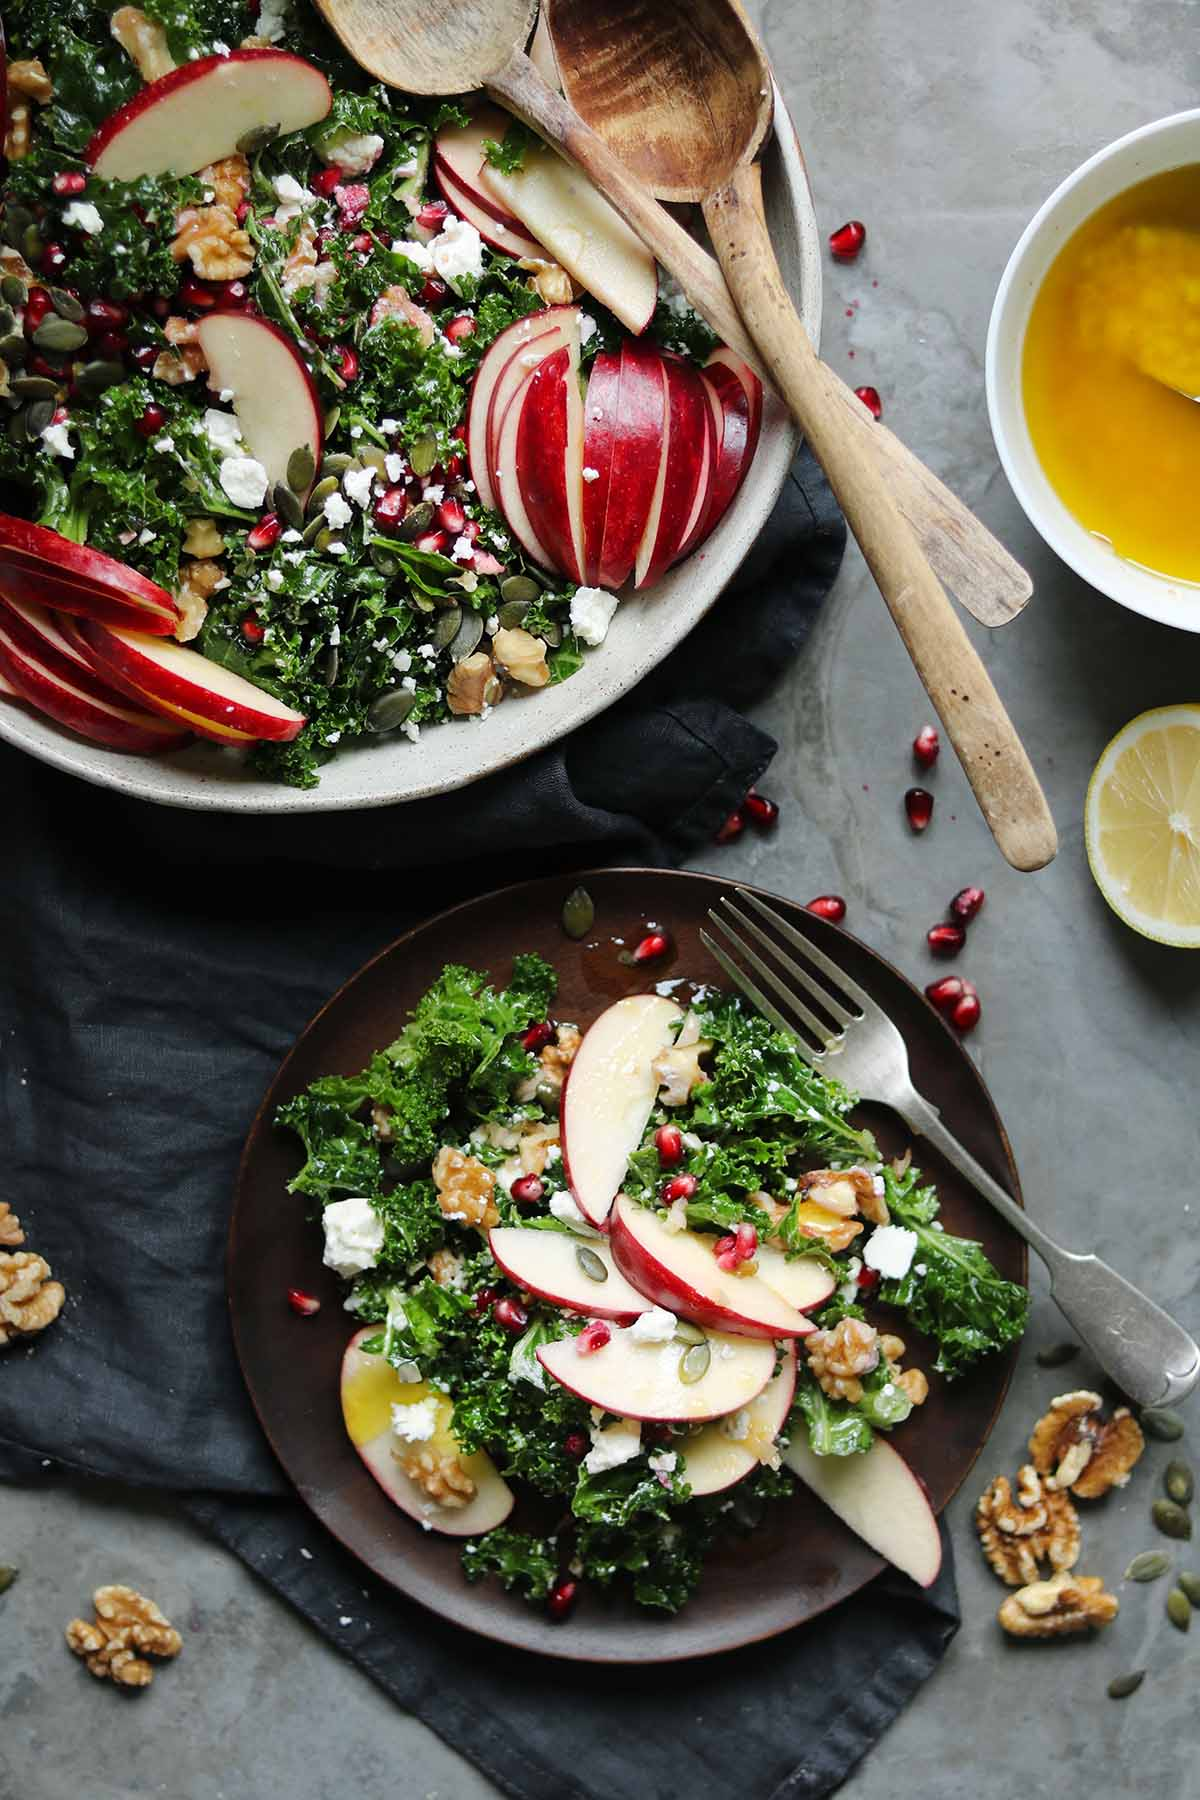 Sliced red gala apples with kale, feta, walnut halves, pumpkin seeds and pomegranate served on a plate.